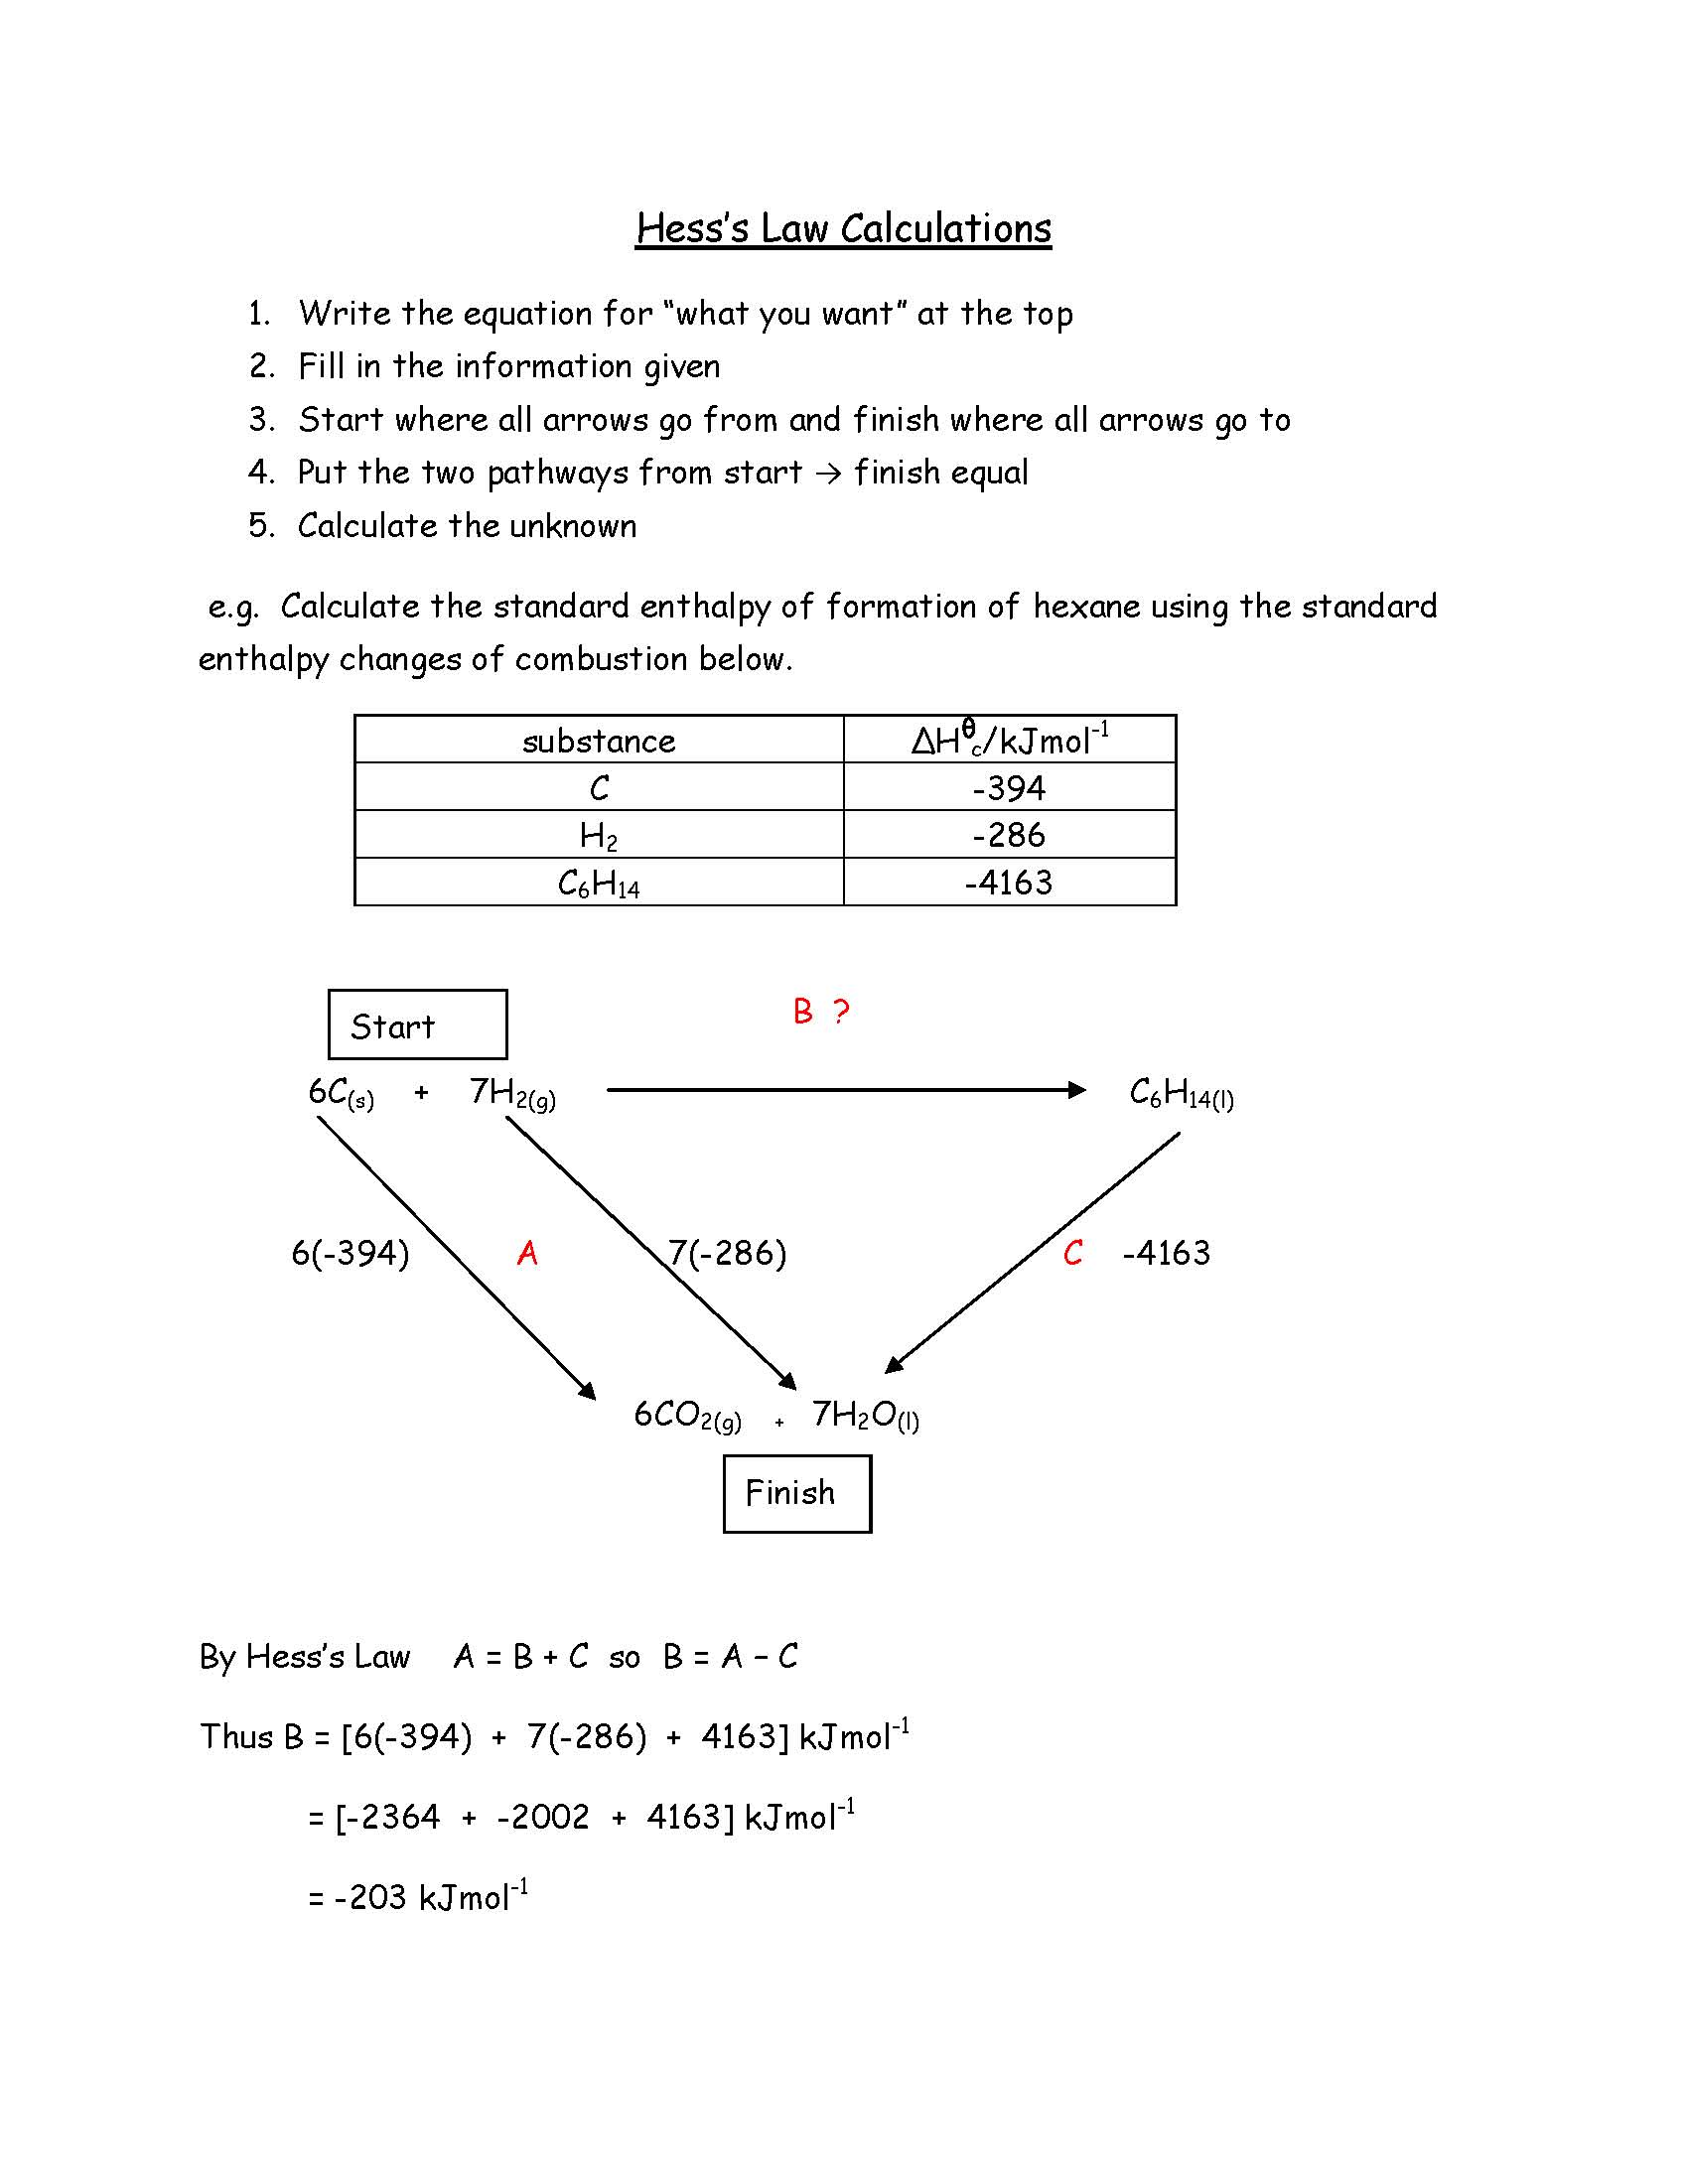 Hess's Law Calculations - Jim's Way1